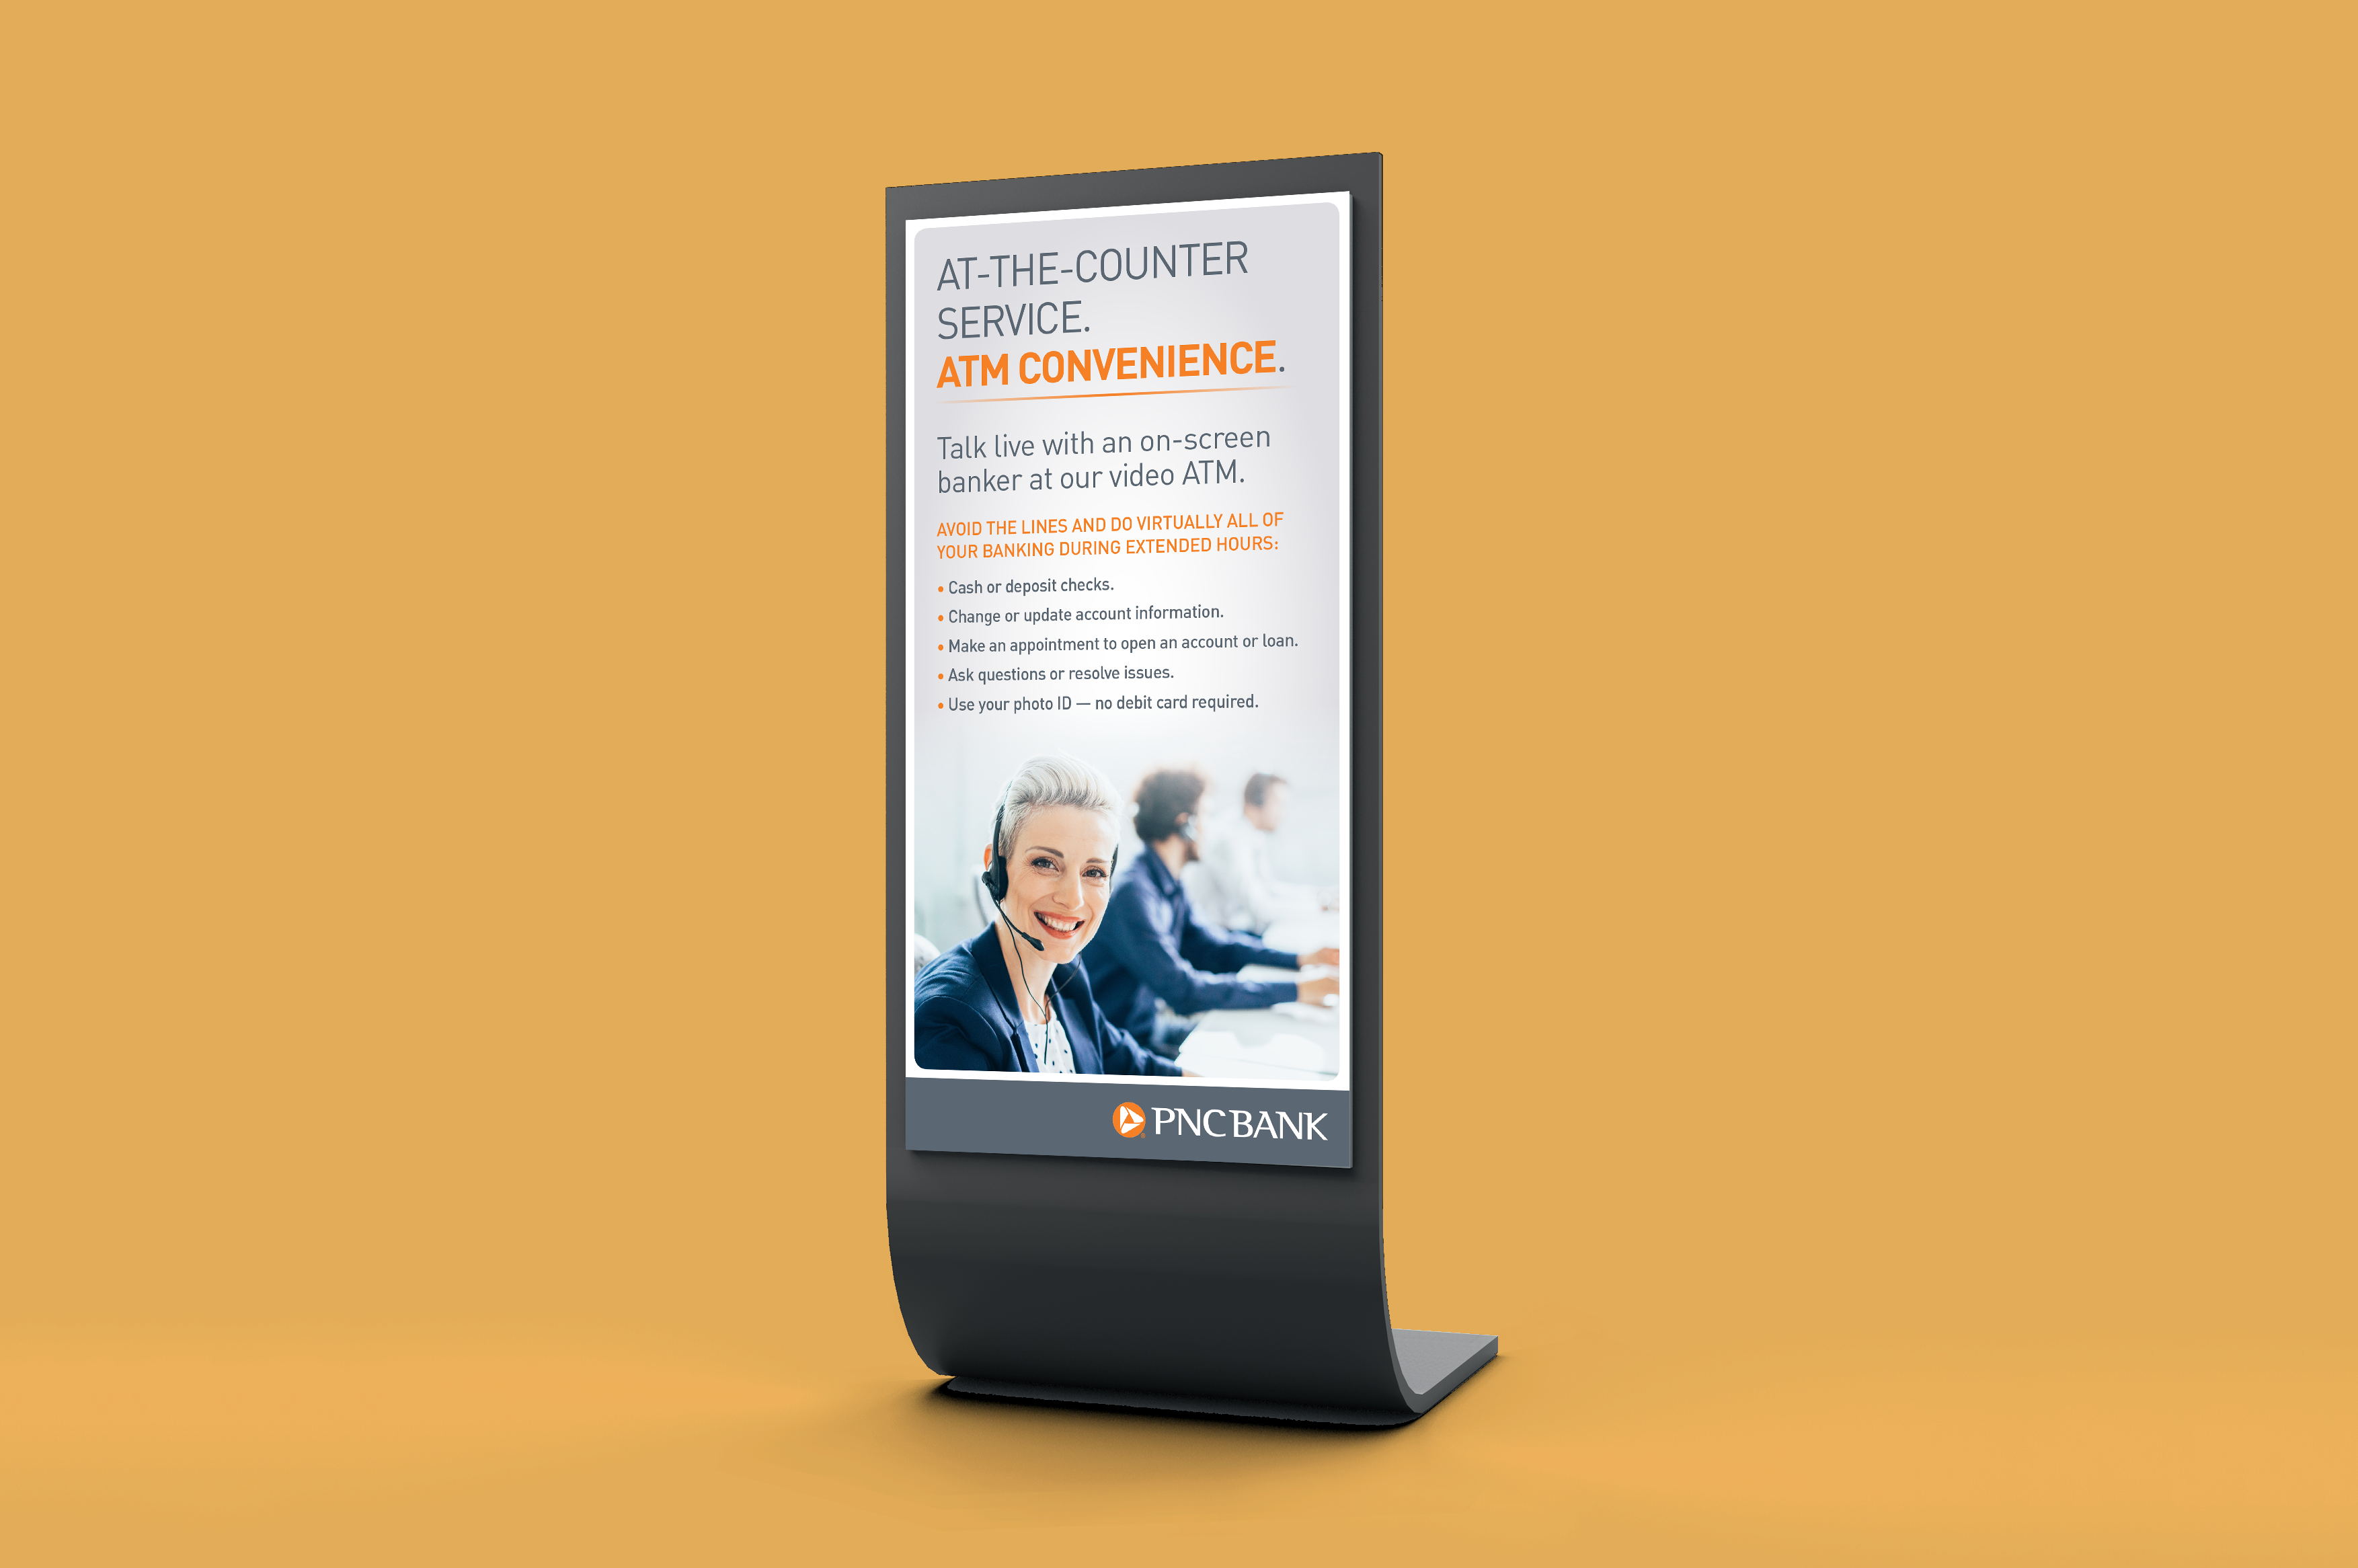 """A mockup of a tall, vertical sign over a mustard background. The sign features a light gray gradient background, with a headline reading """"At the counter service. ATM convenience"""" above an image of a happy banker speaking through a headset."""